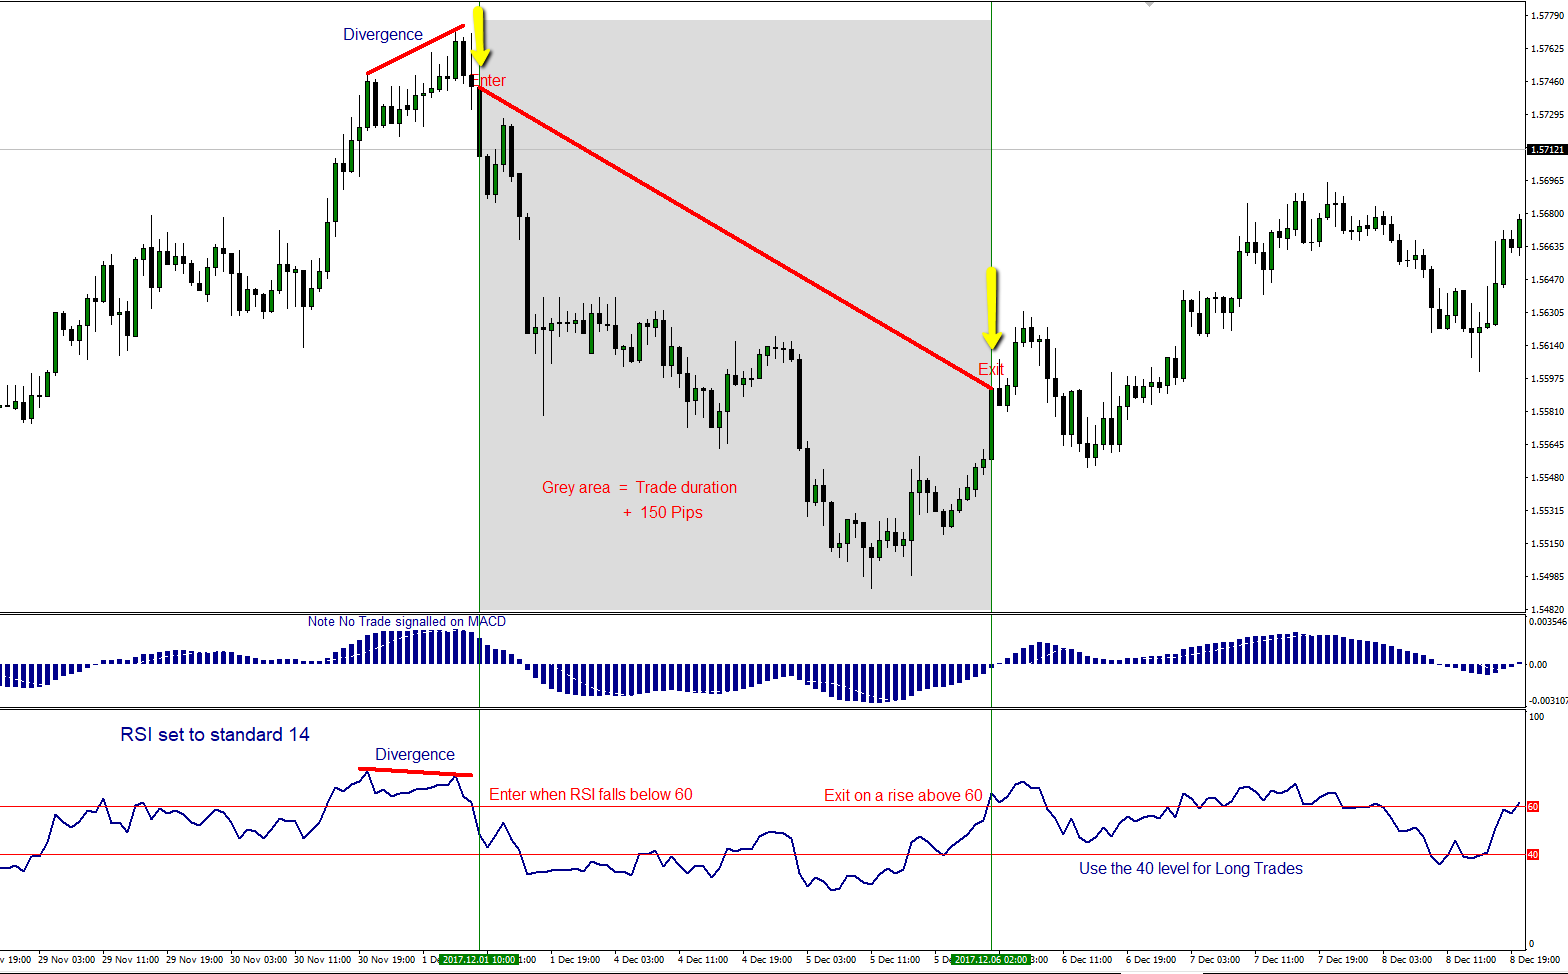 Two strategies for trading Price / Indicator Divergences